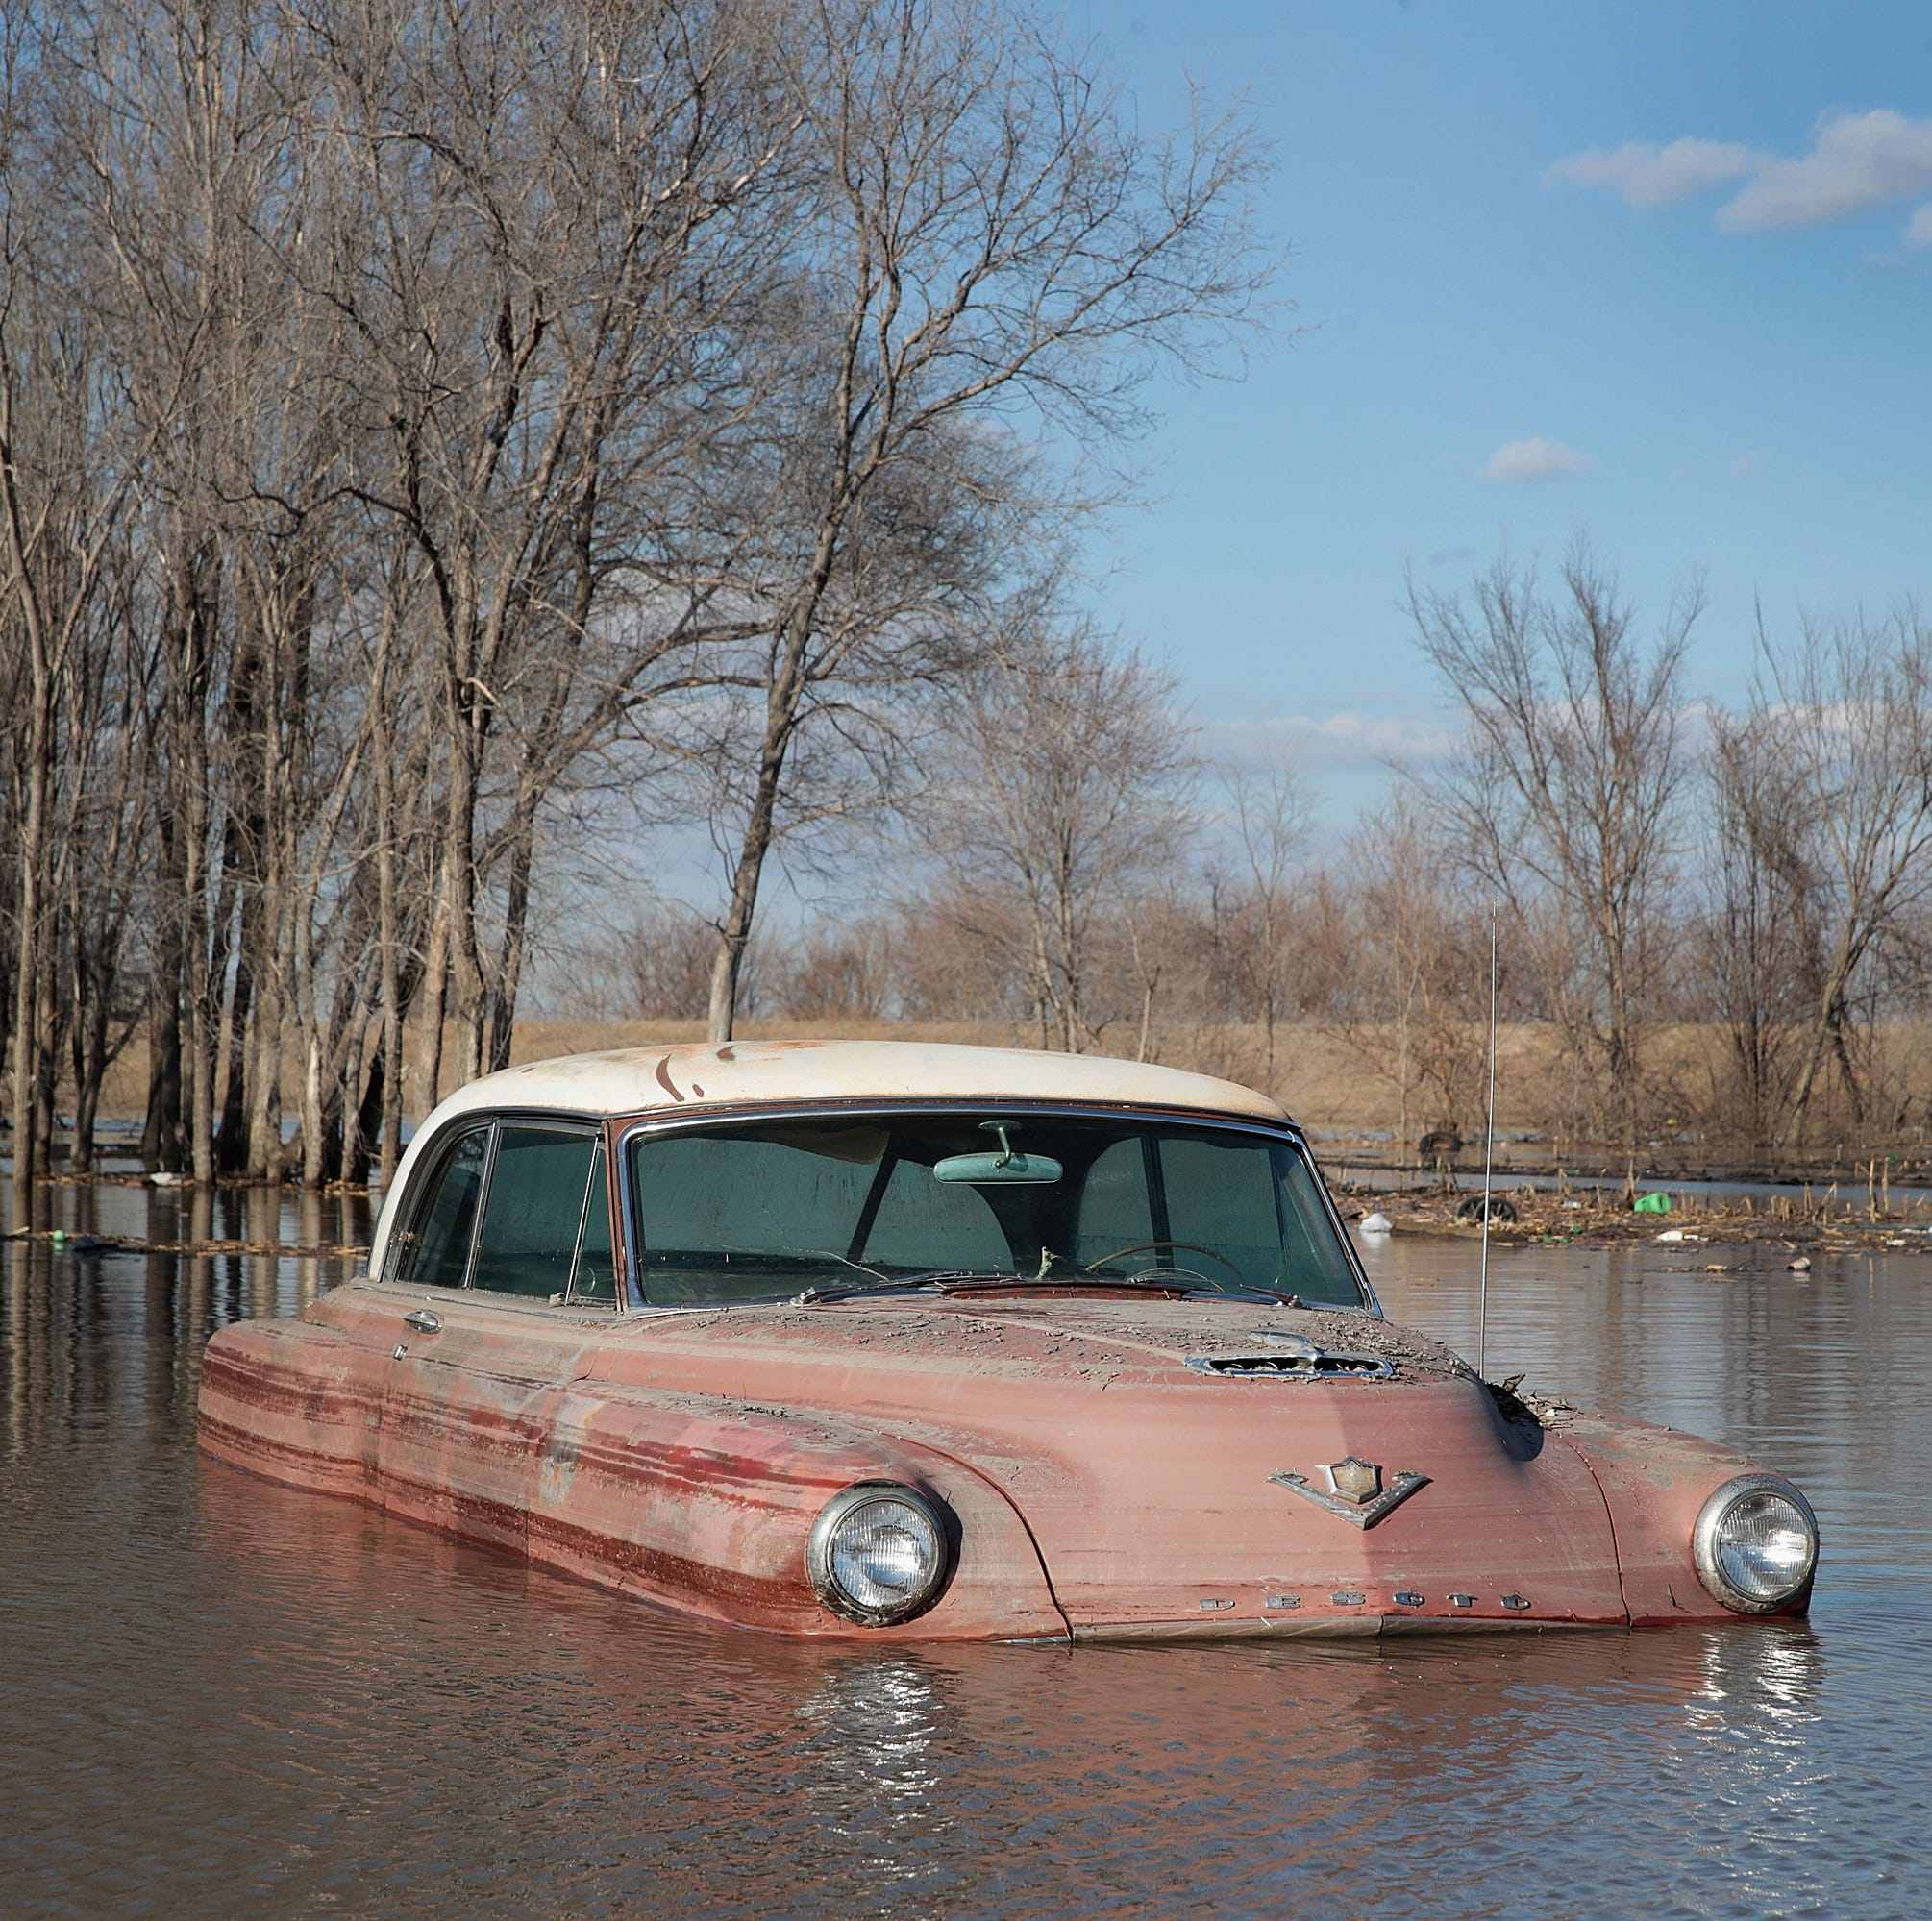 Mayors: As floods deluge Midwest towns, where is national response to climate disasters?